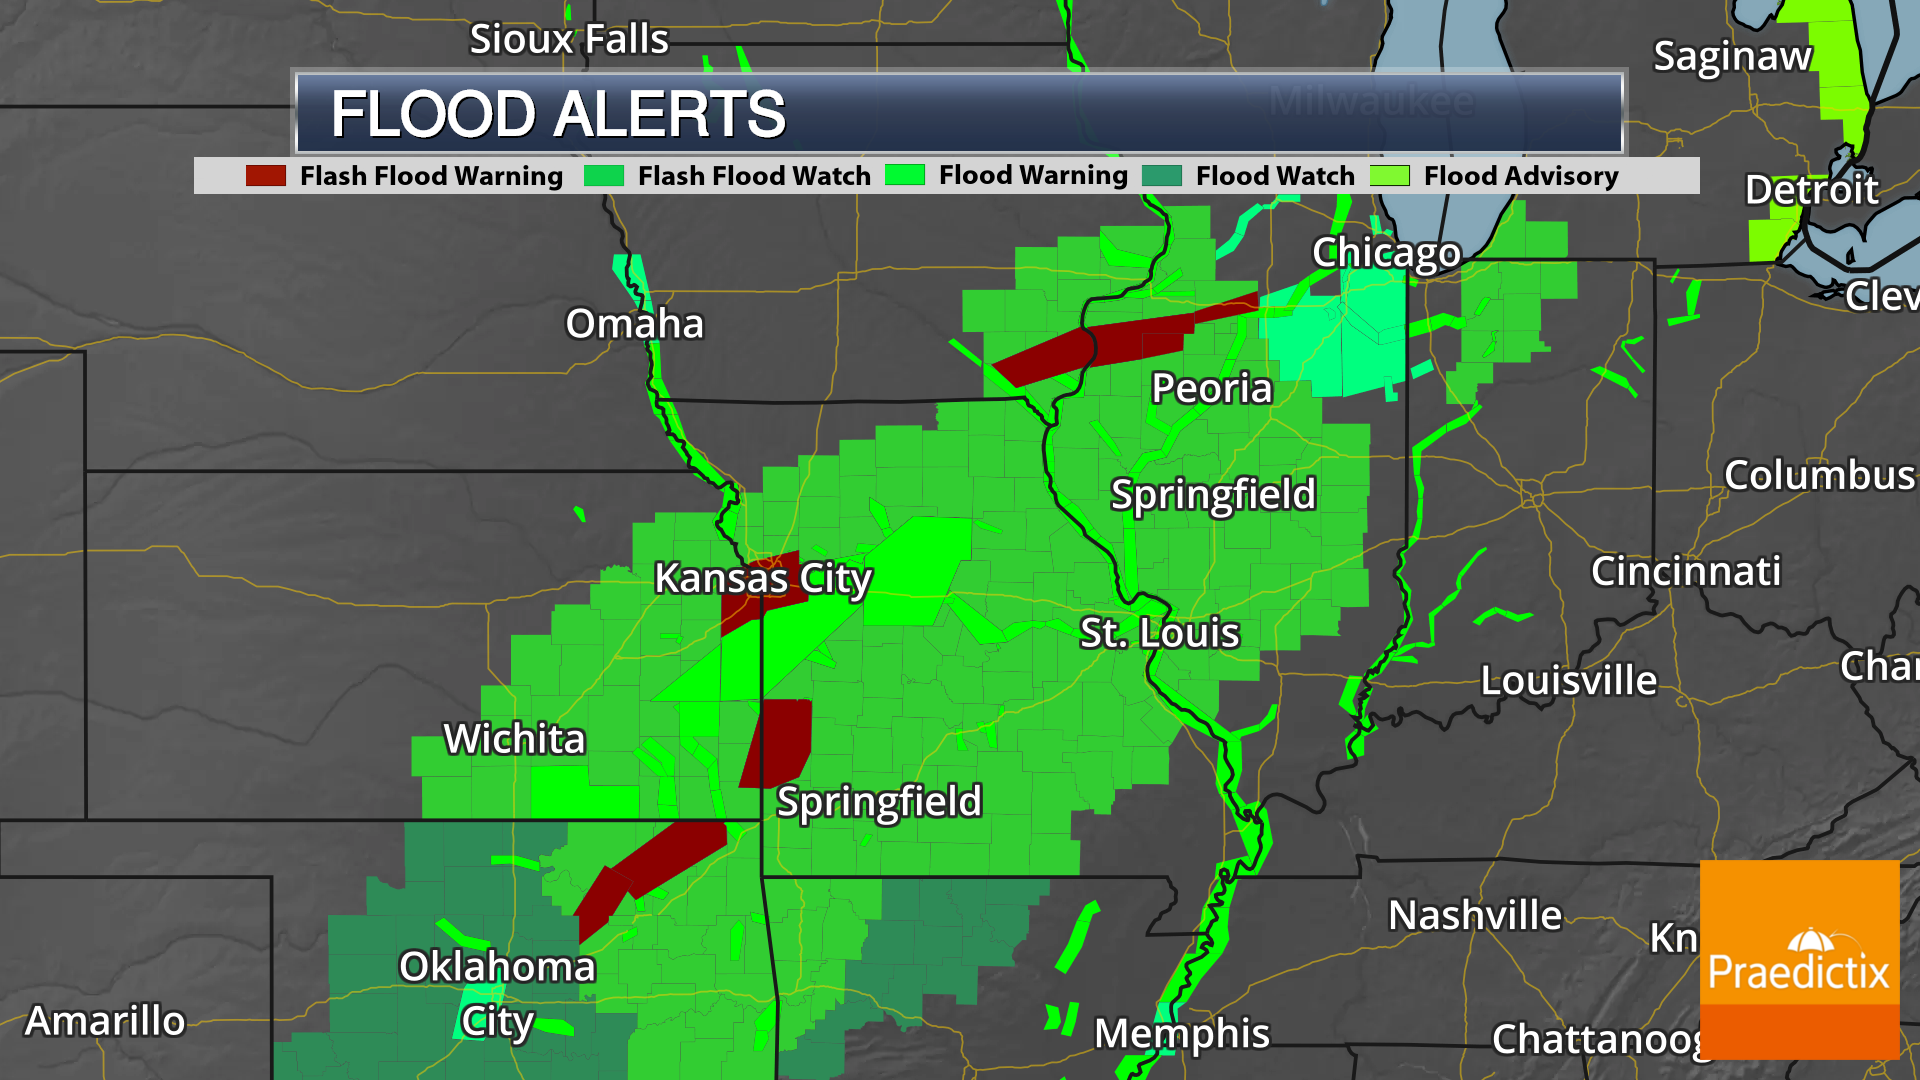 Flood weather graphics showing flood warnings watches and advisories including flash flooding in Central Plains from April 30, 2019.